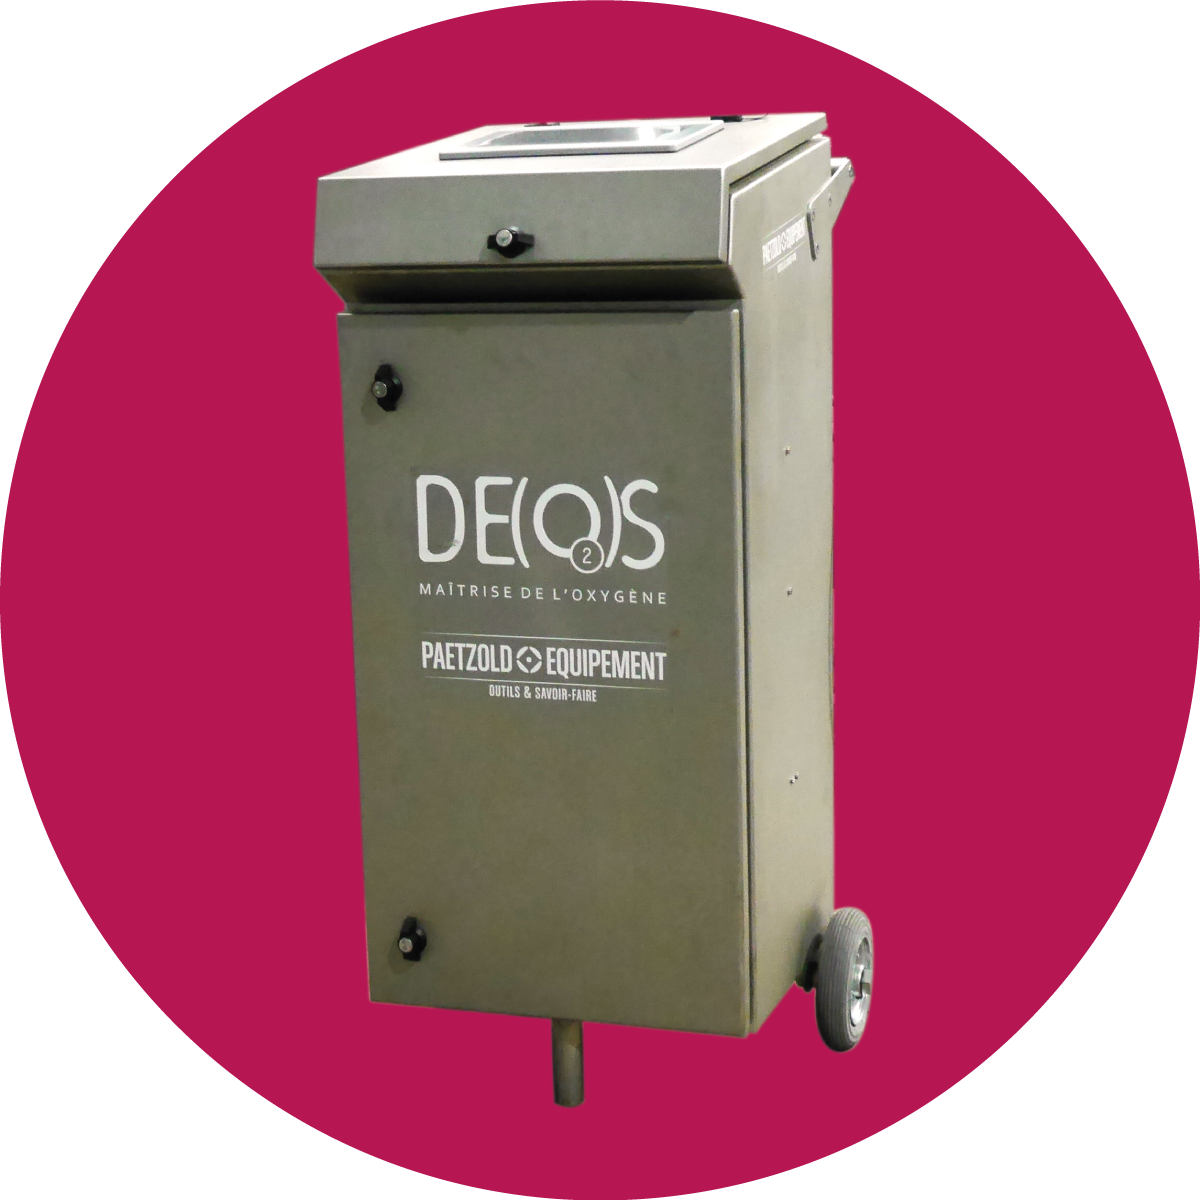 Deos® deoxygenation device / controlled oxygenation device